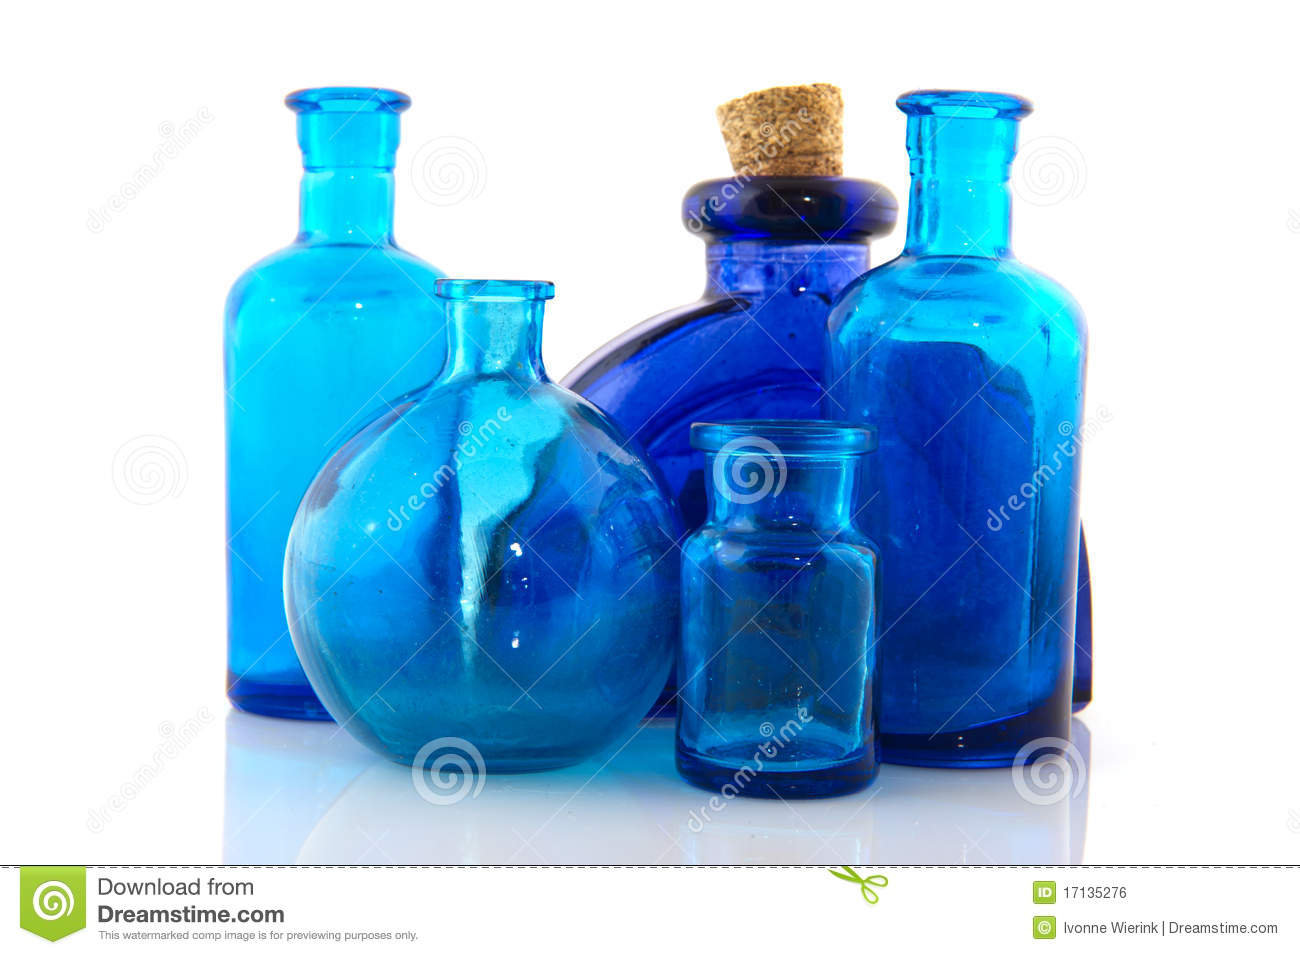 Blue Glass Objects Royalty Free Stock Image - Image: 17135276